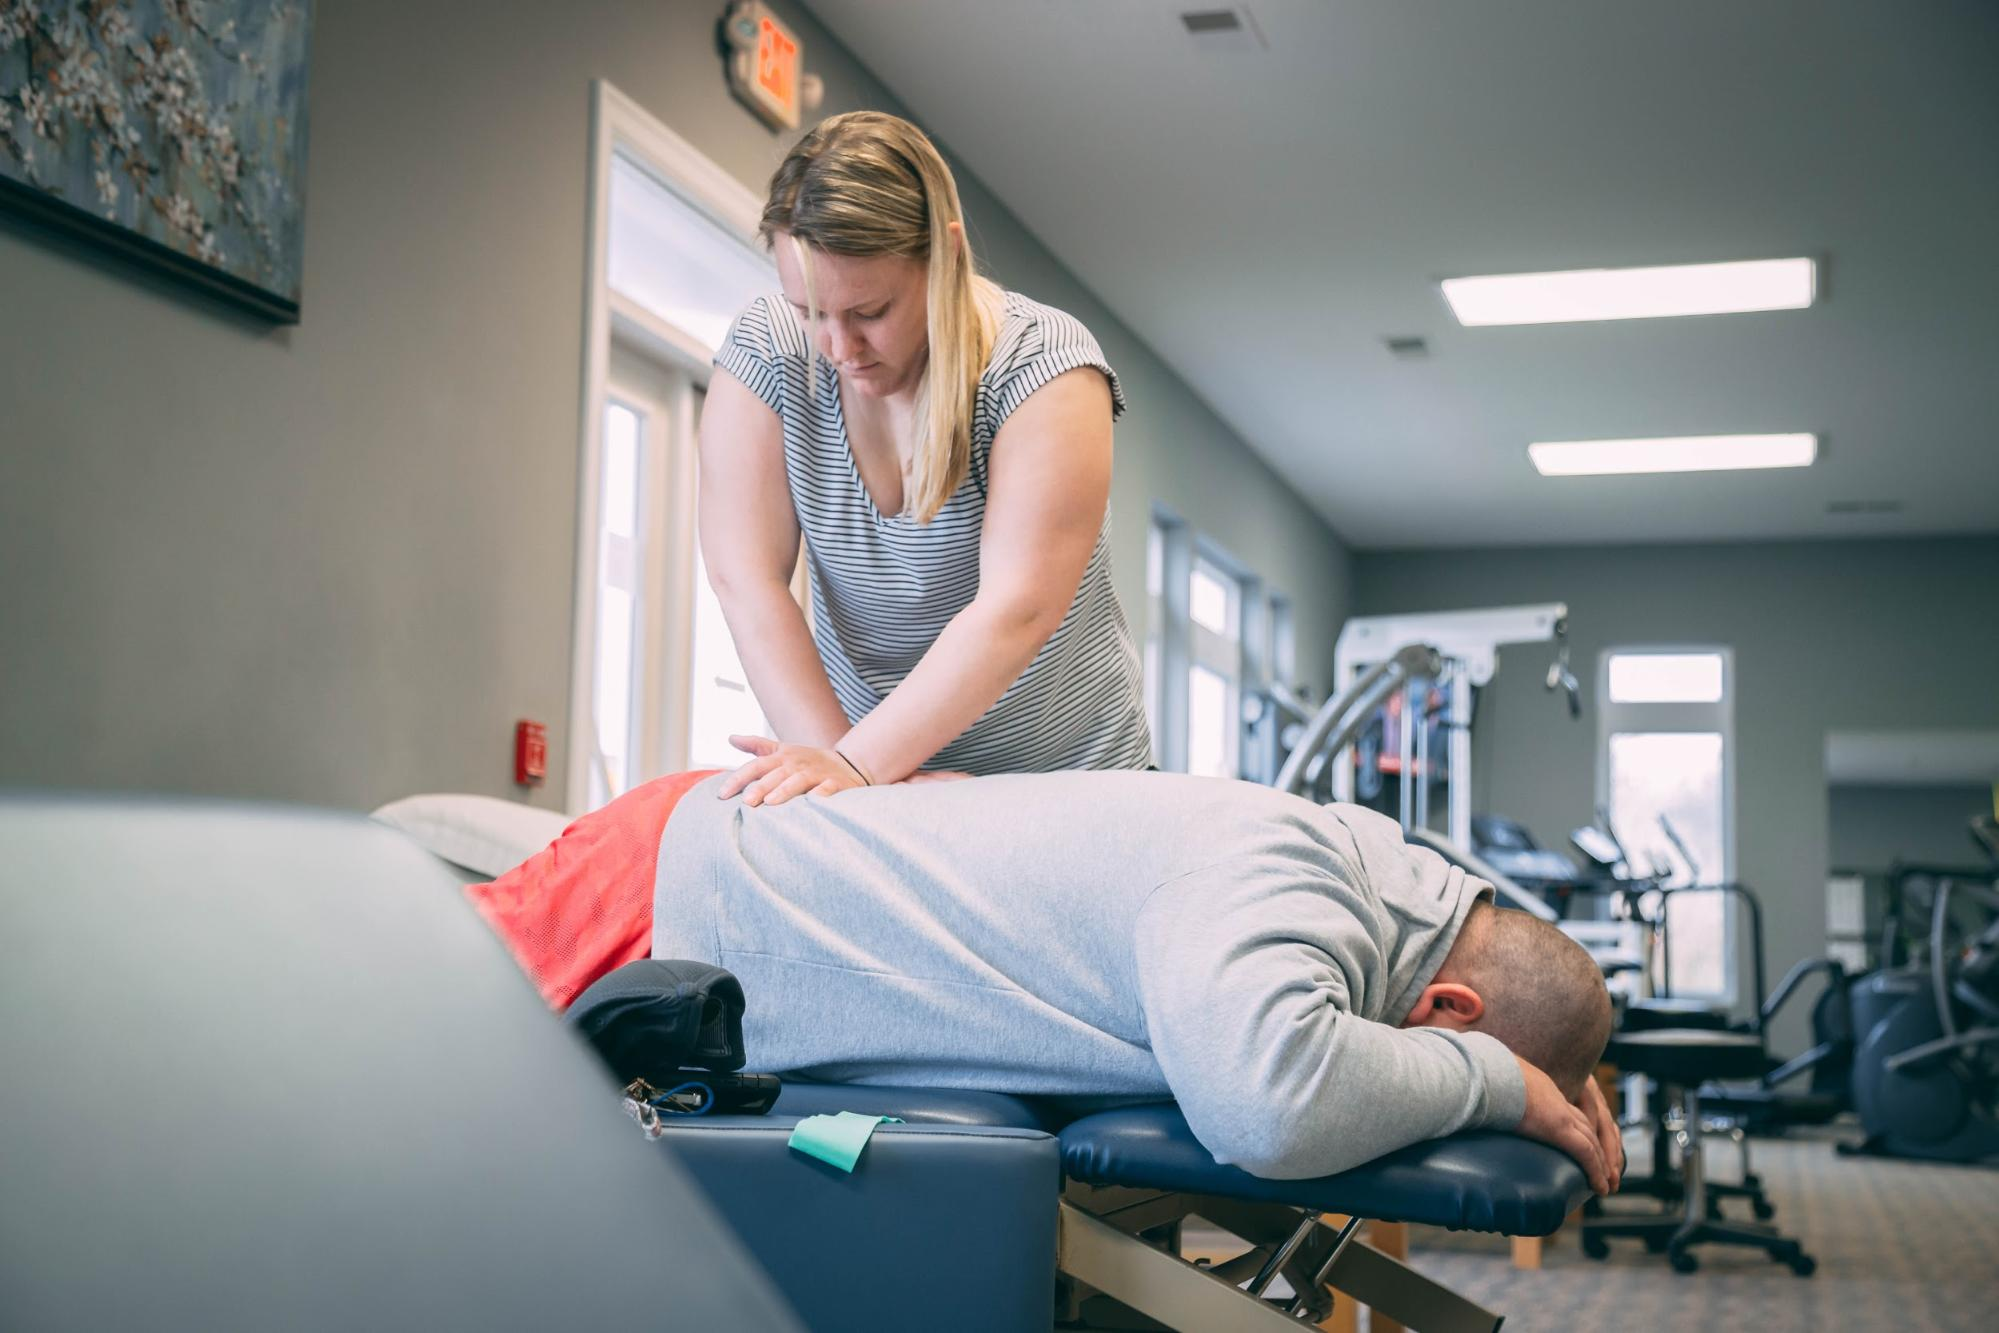 Lattimore Physical Therapist massaging patient's back laying down